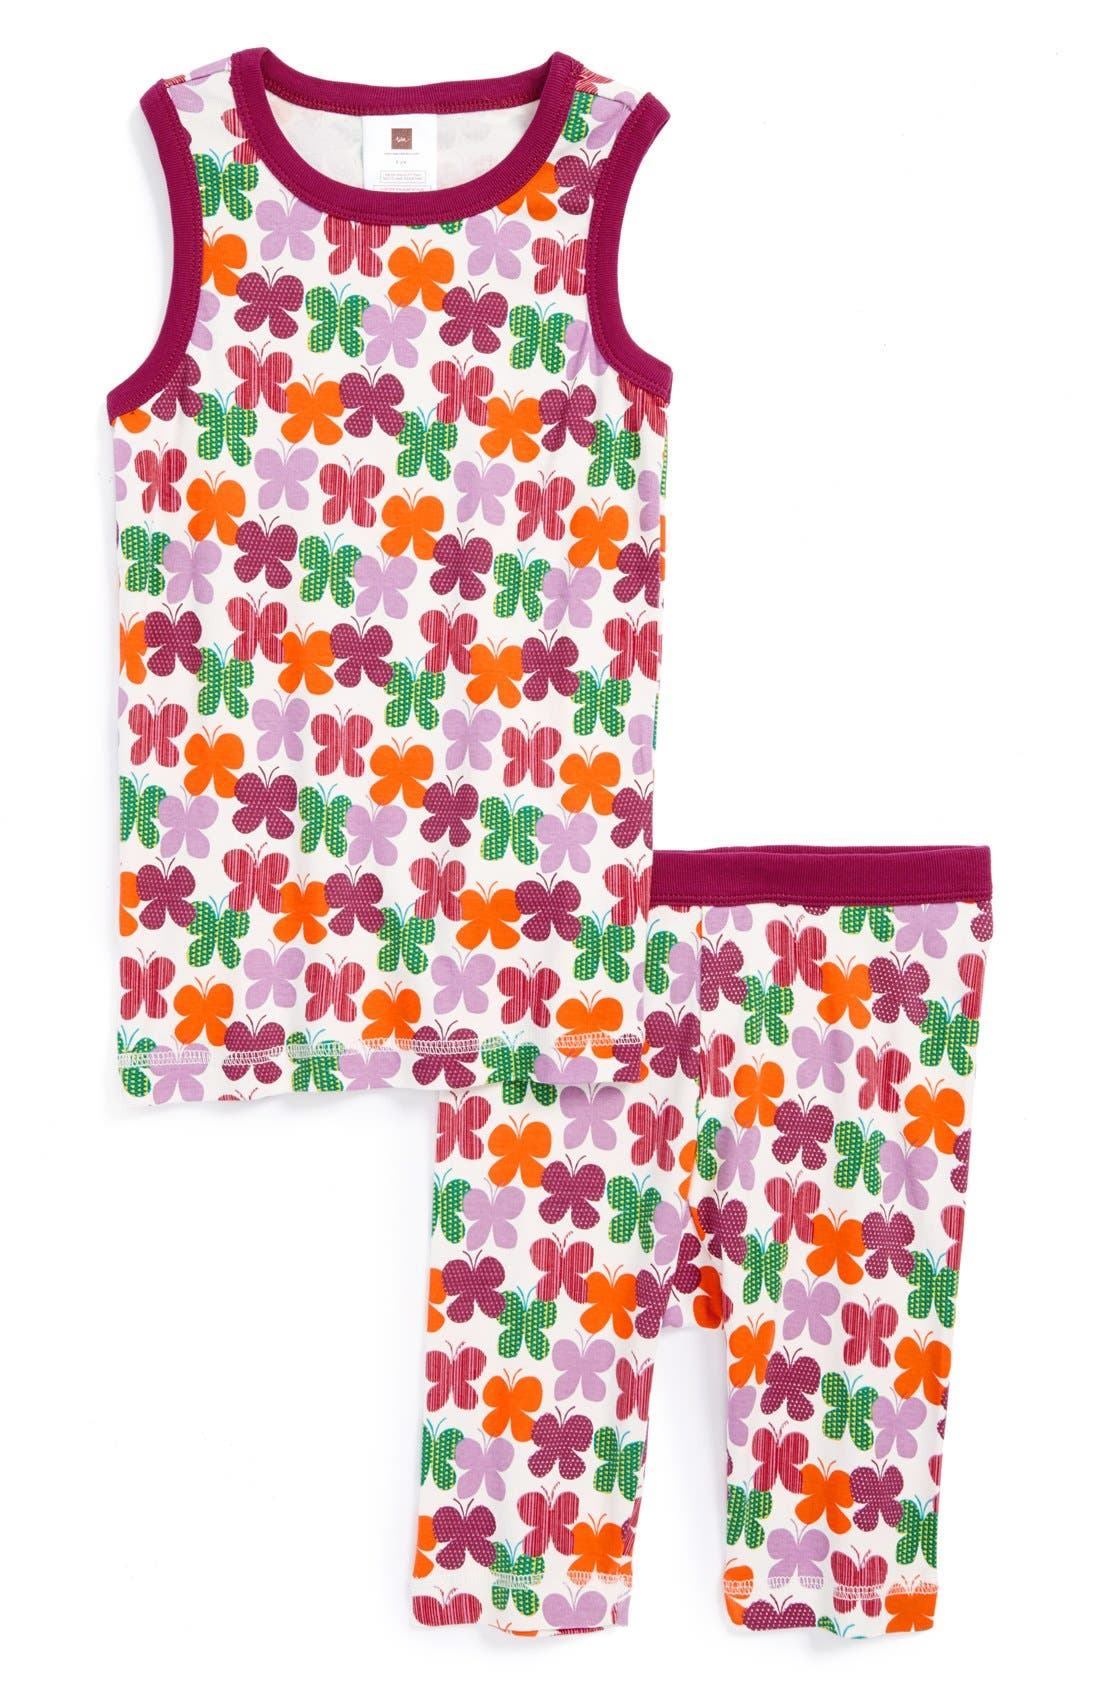 Main Image - Tea Collection 'Swirling Butterflies' Two-Piece Fitted Pajamas (Little Girls & Big Girls)